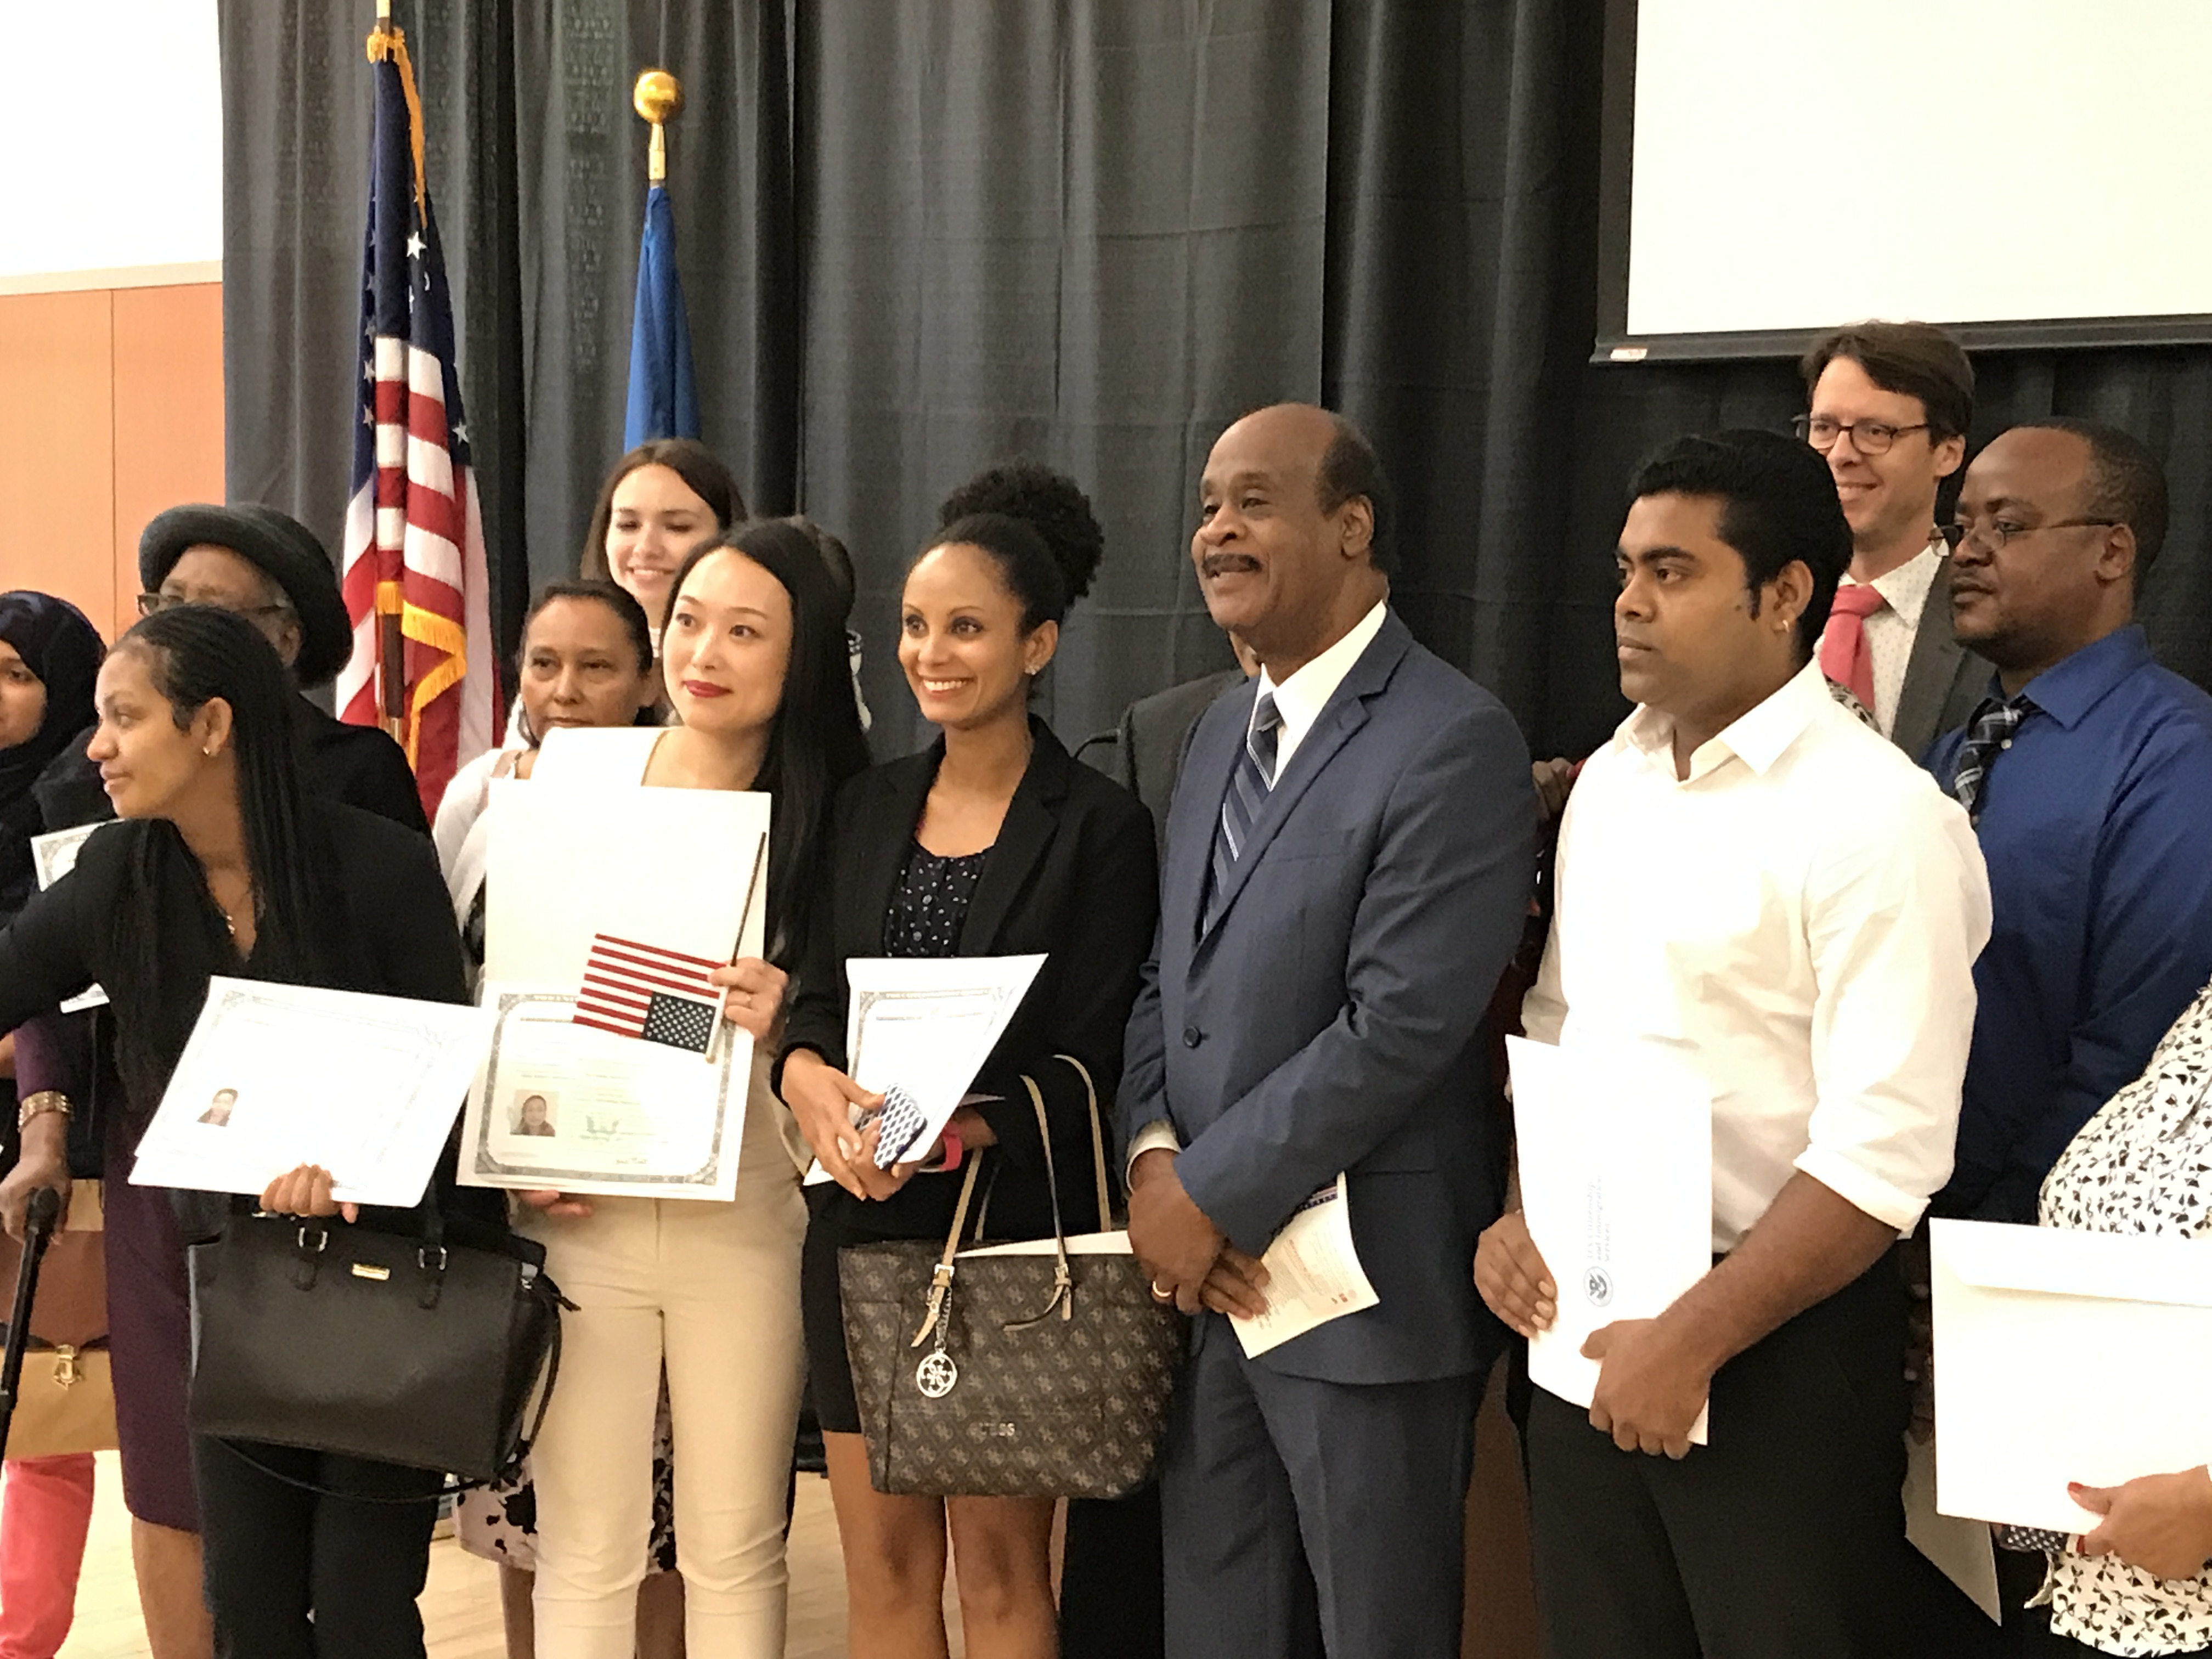 Registration of new citizens